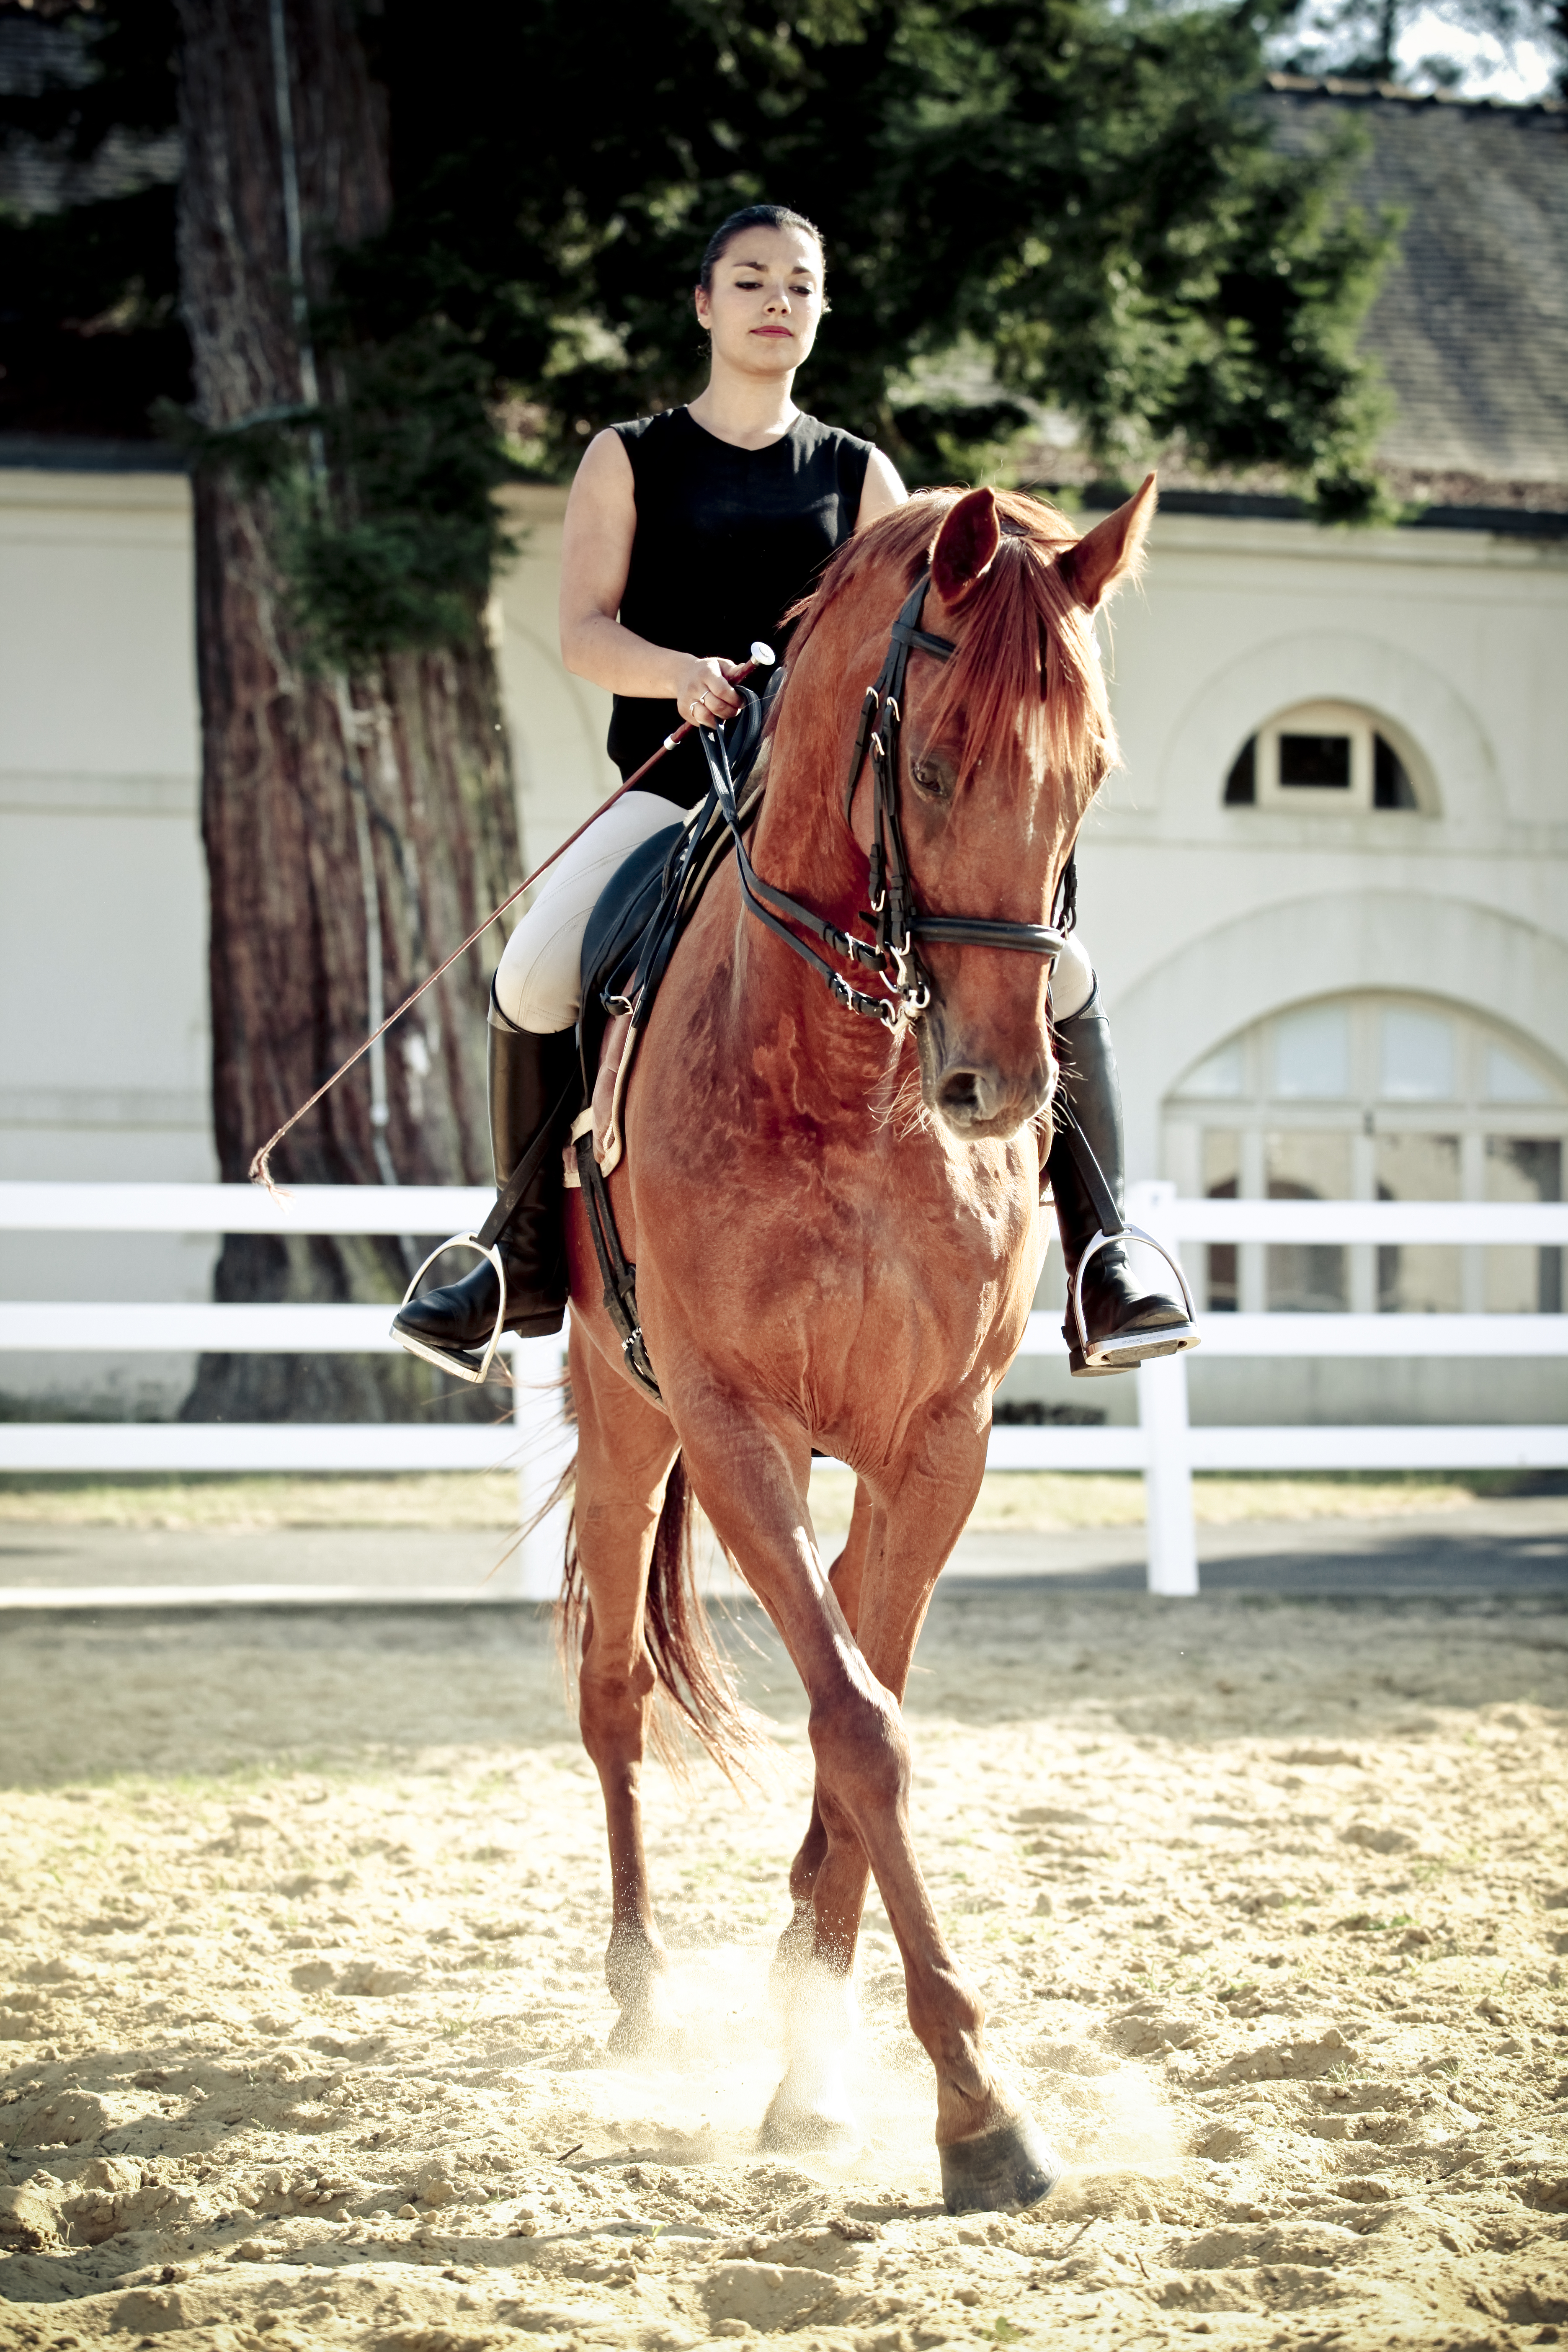 A cheval - Dressage